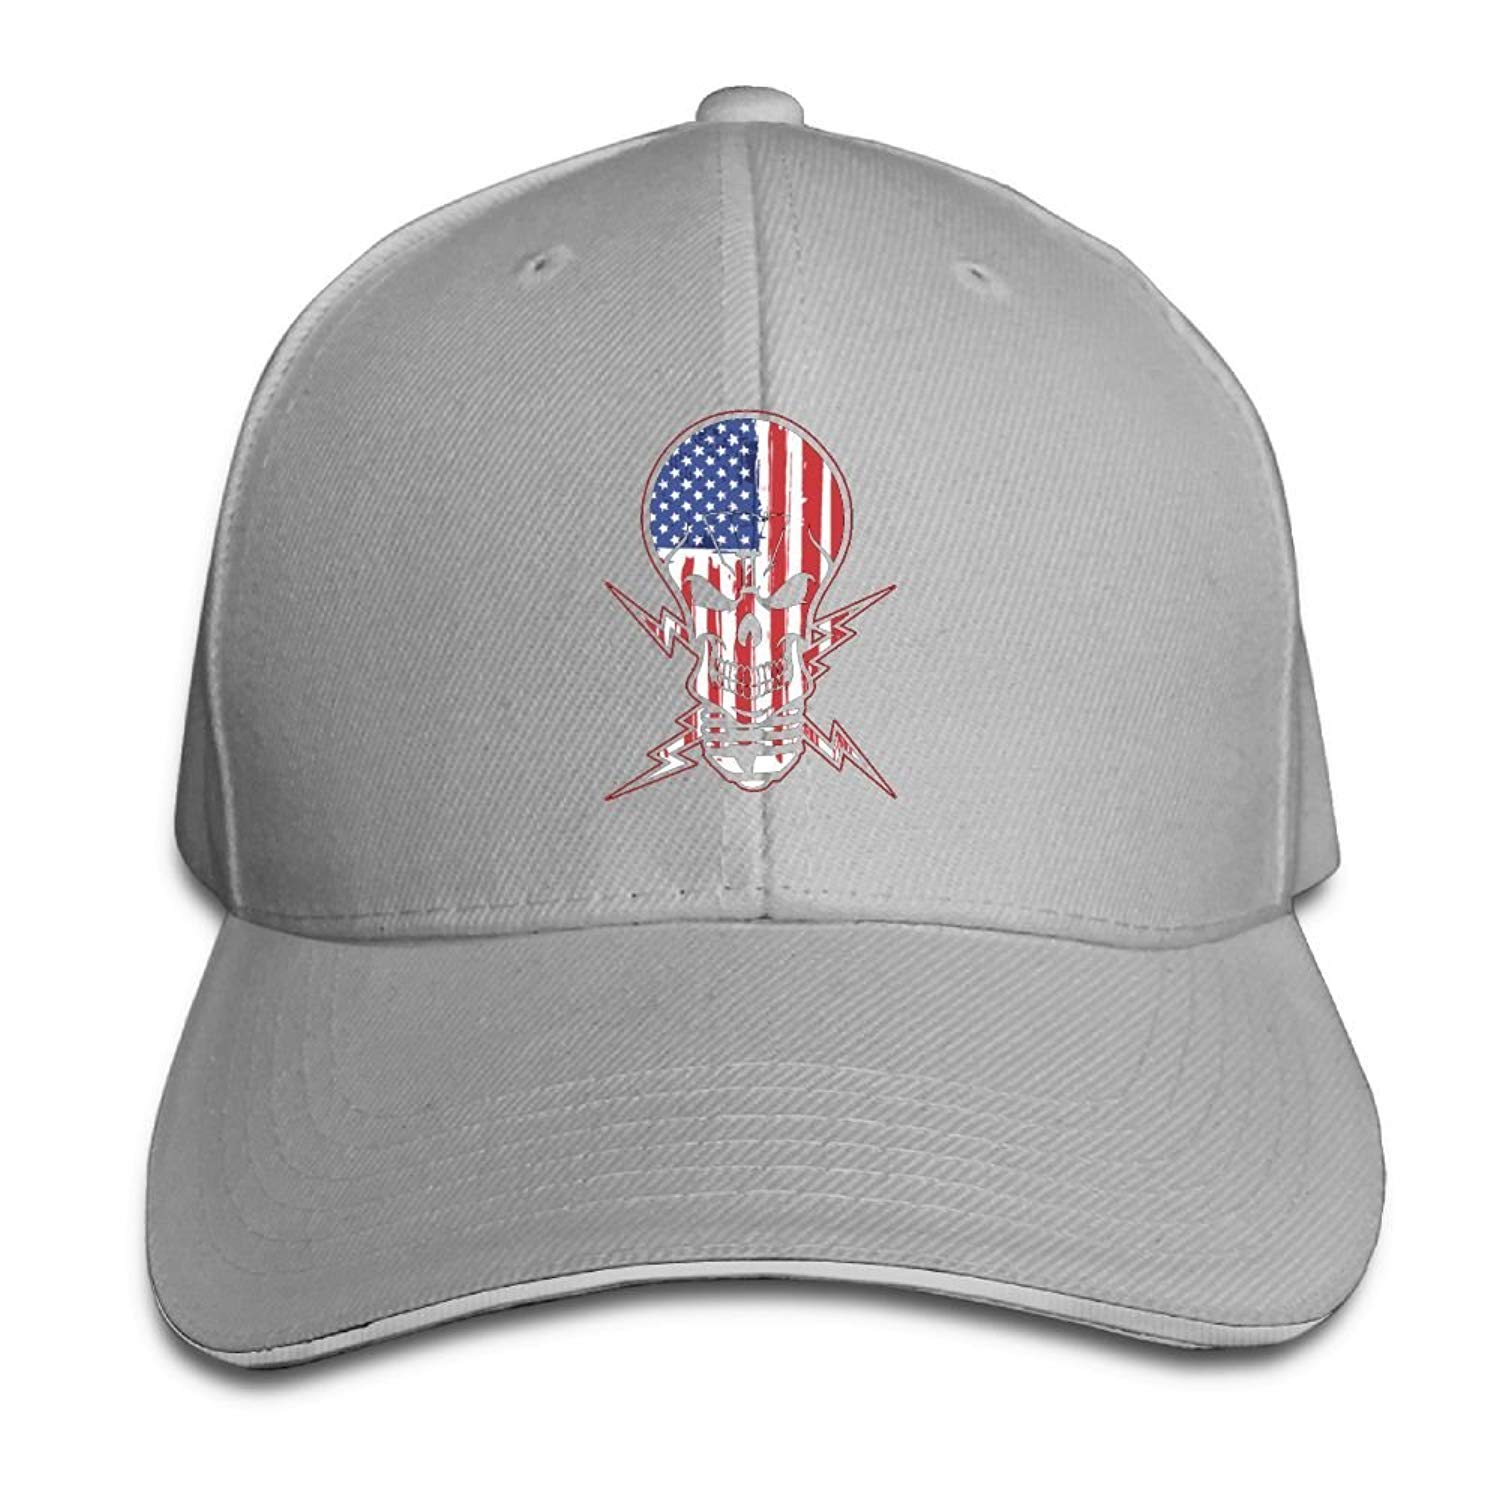 Amazon.com   Michael Rong Unisex Adjustable Sandwich Hats Solid Colors  Baseball Cap Snapback Hat for American Made Ideas   Sports   Outdoors aa305203843